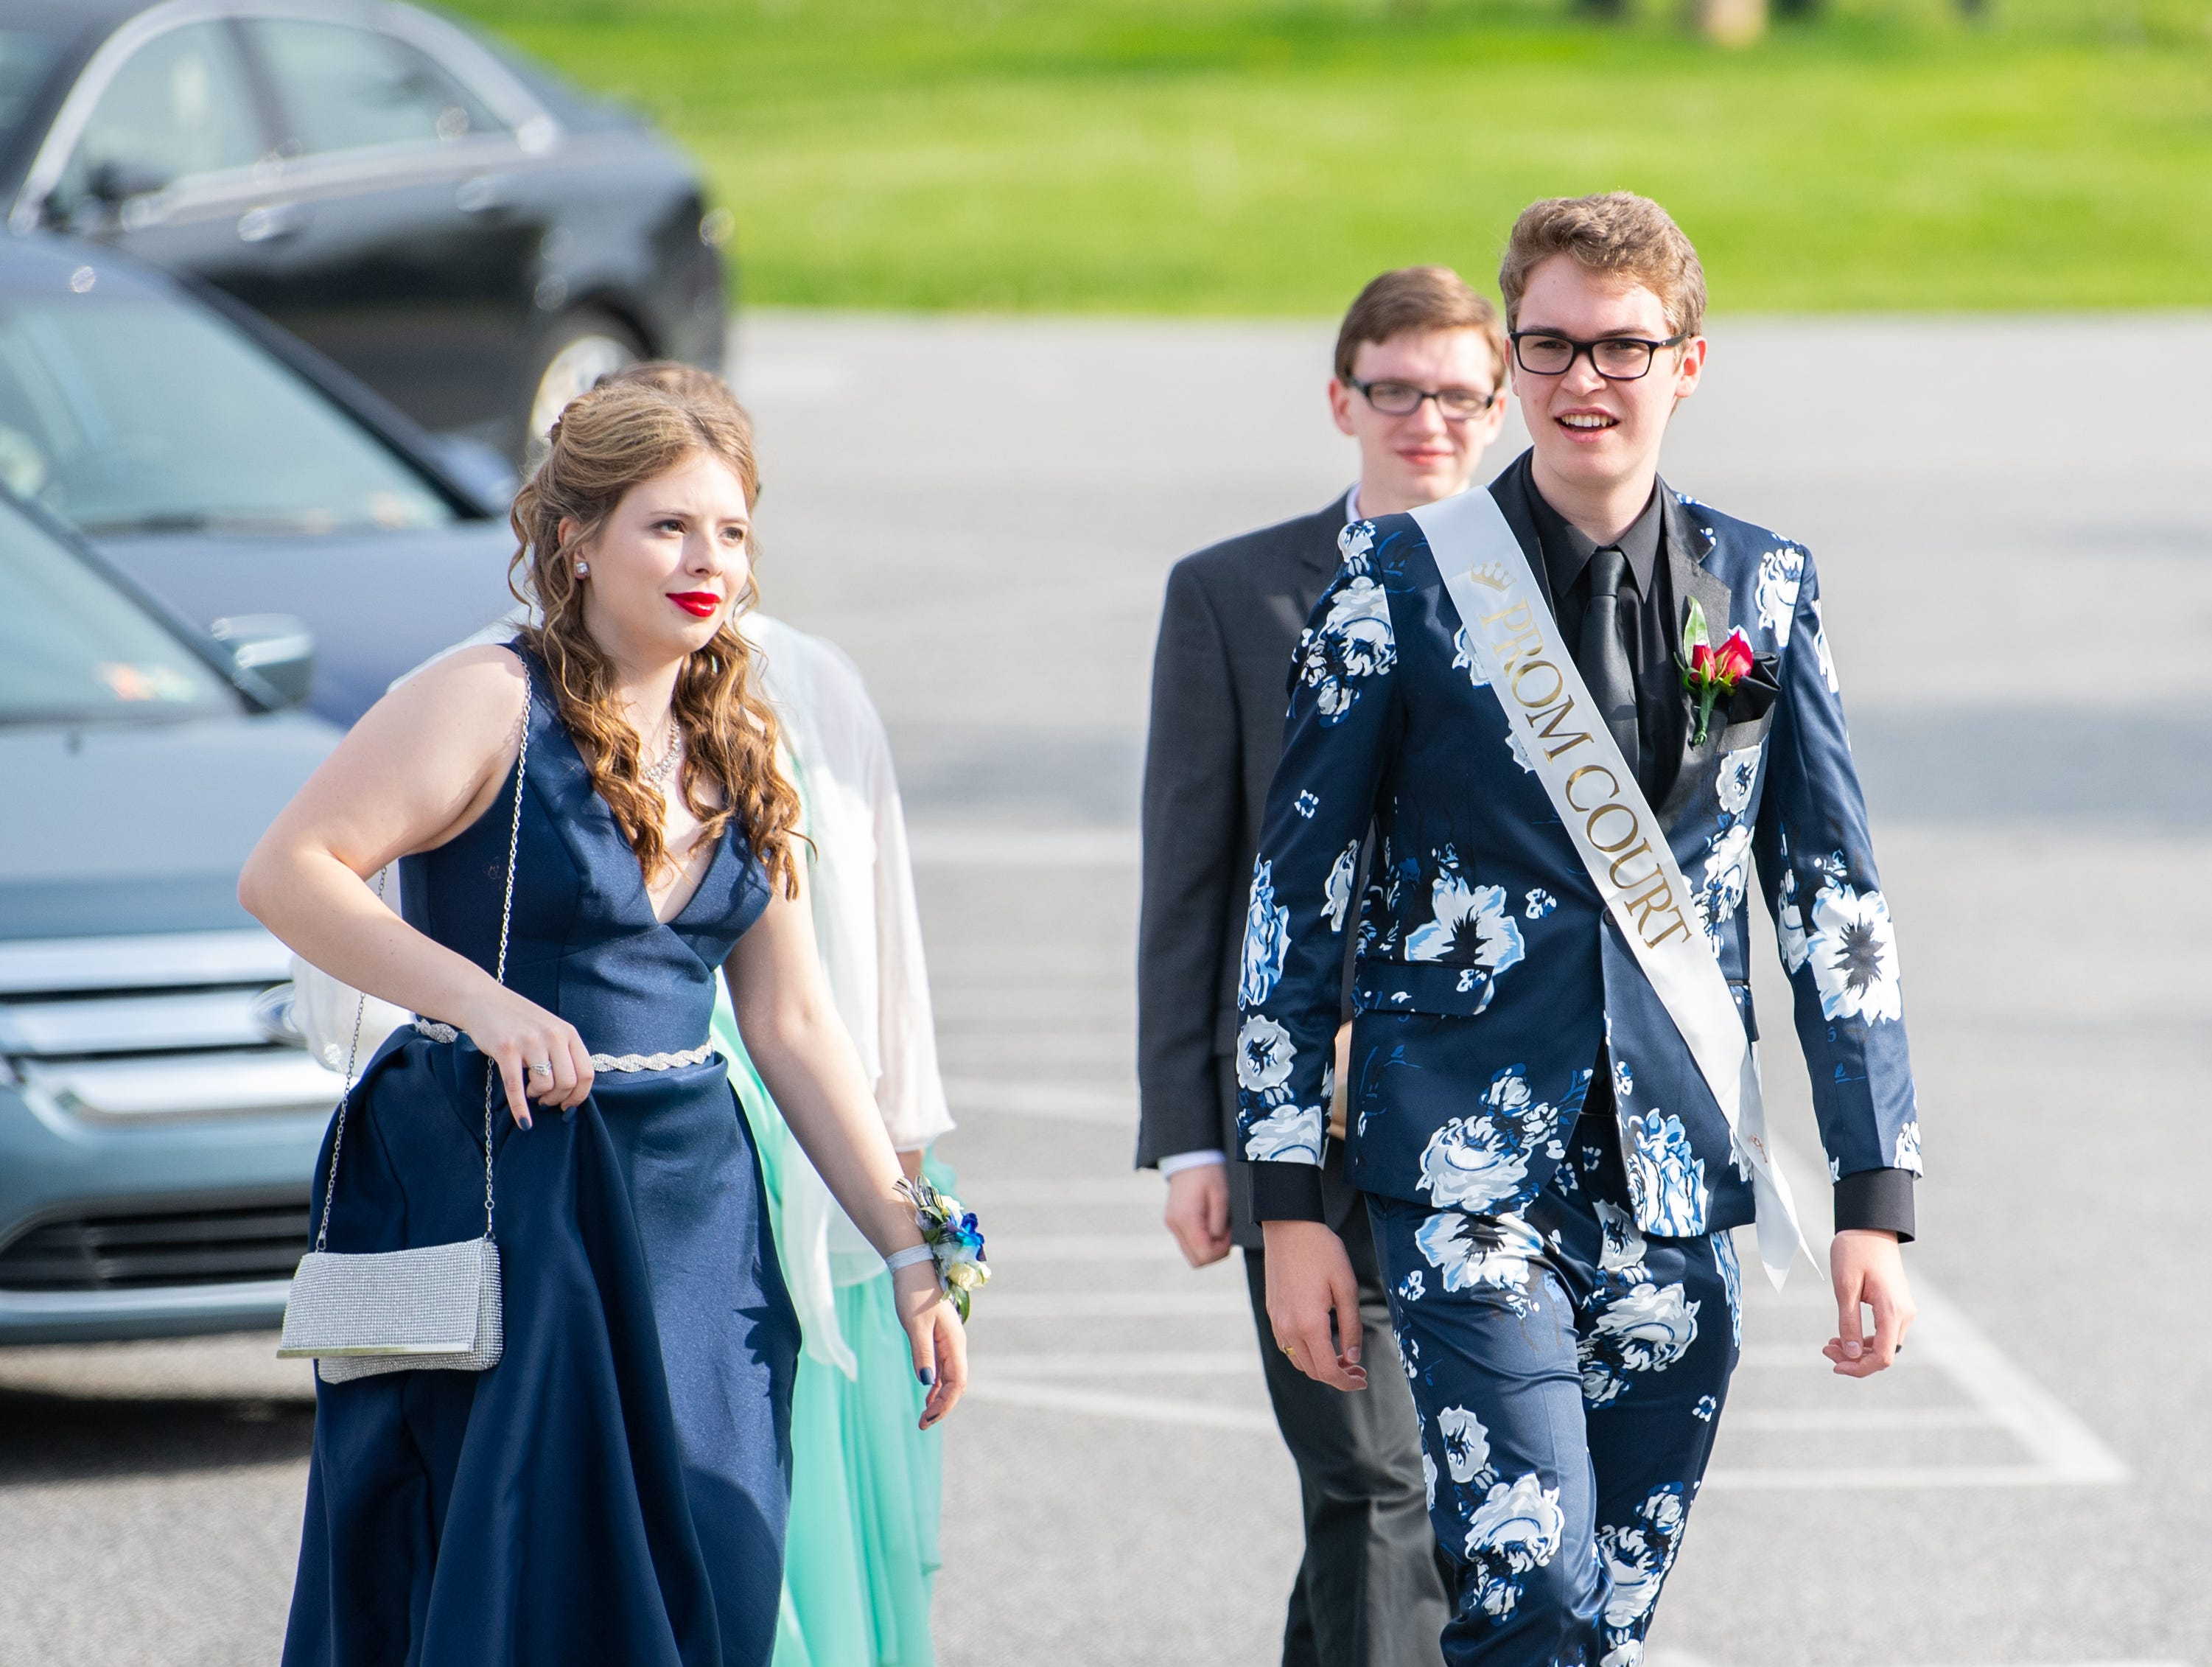 Students arrive at Wisehaven Event Center for the York Catholic prom, May 3, 2019.